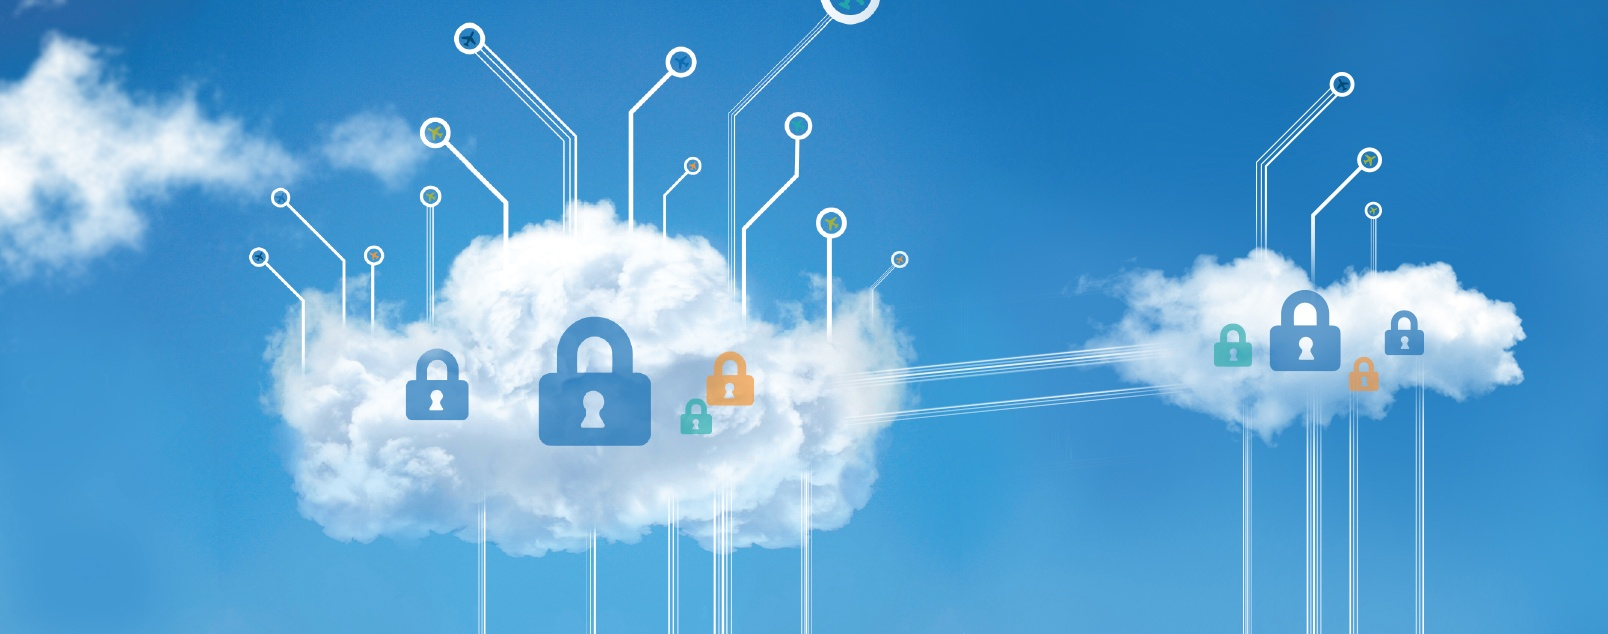 Vistair - Cloud security and the airline industry